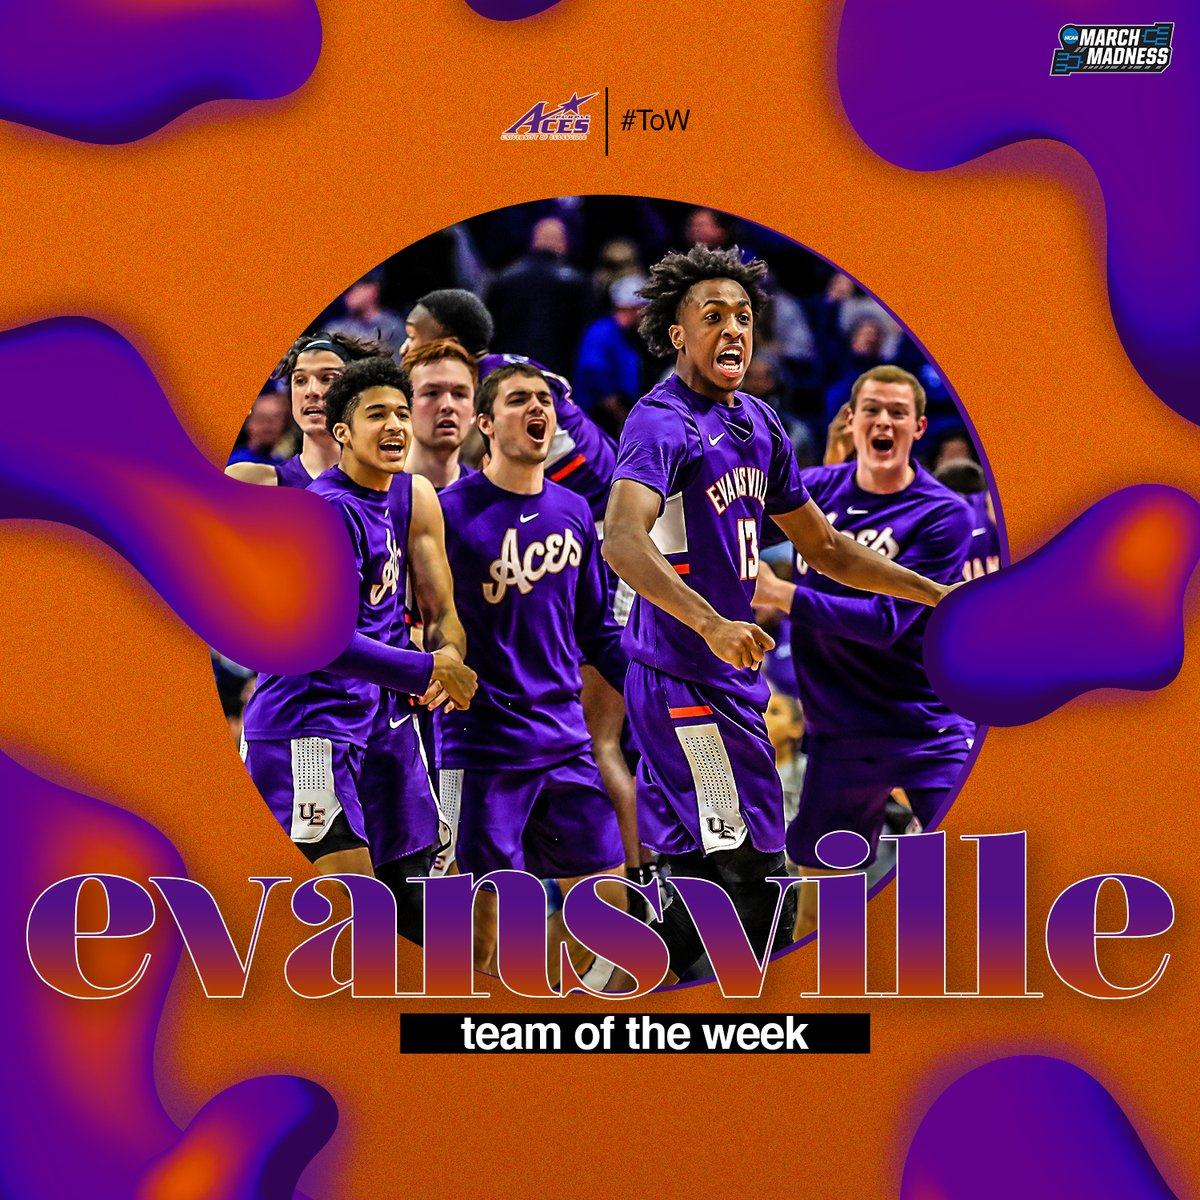 EVANSVILLE STAND UP!  Knocking off No. 1 Kentucky in Rupp Arena has earned @UEAthletics_MBB Team of the Week from @TheAndyKatz! <br>http://pic.twitter.com/MIGfVTy20w